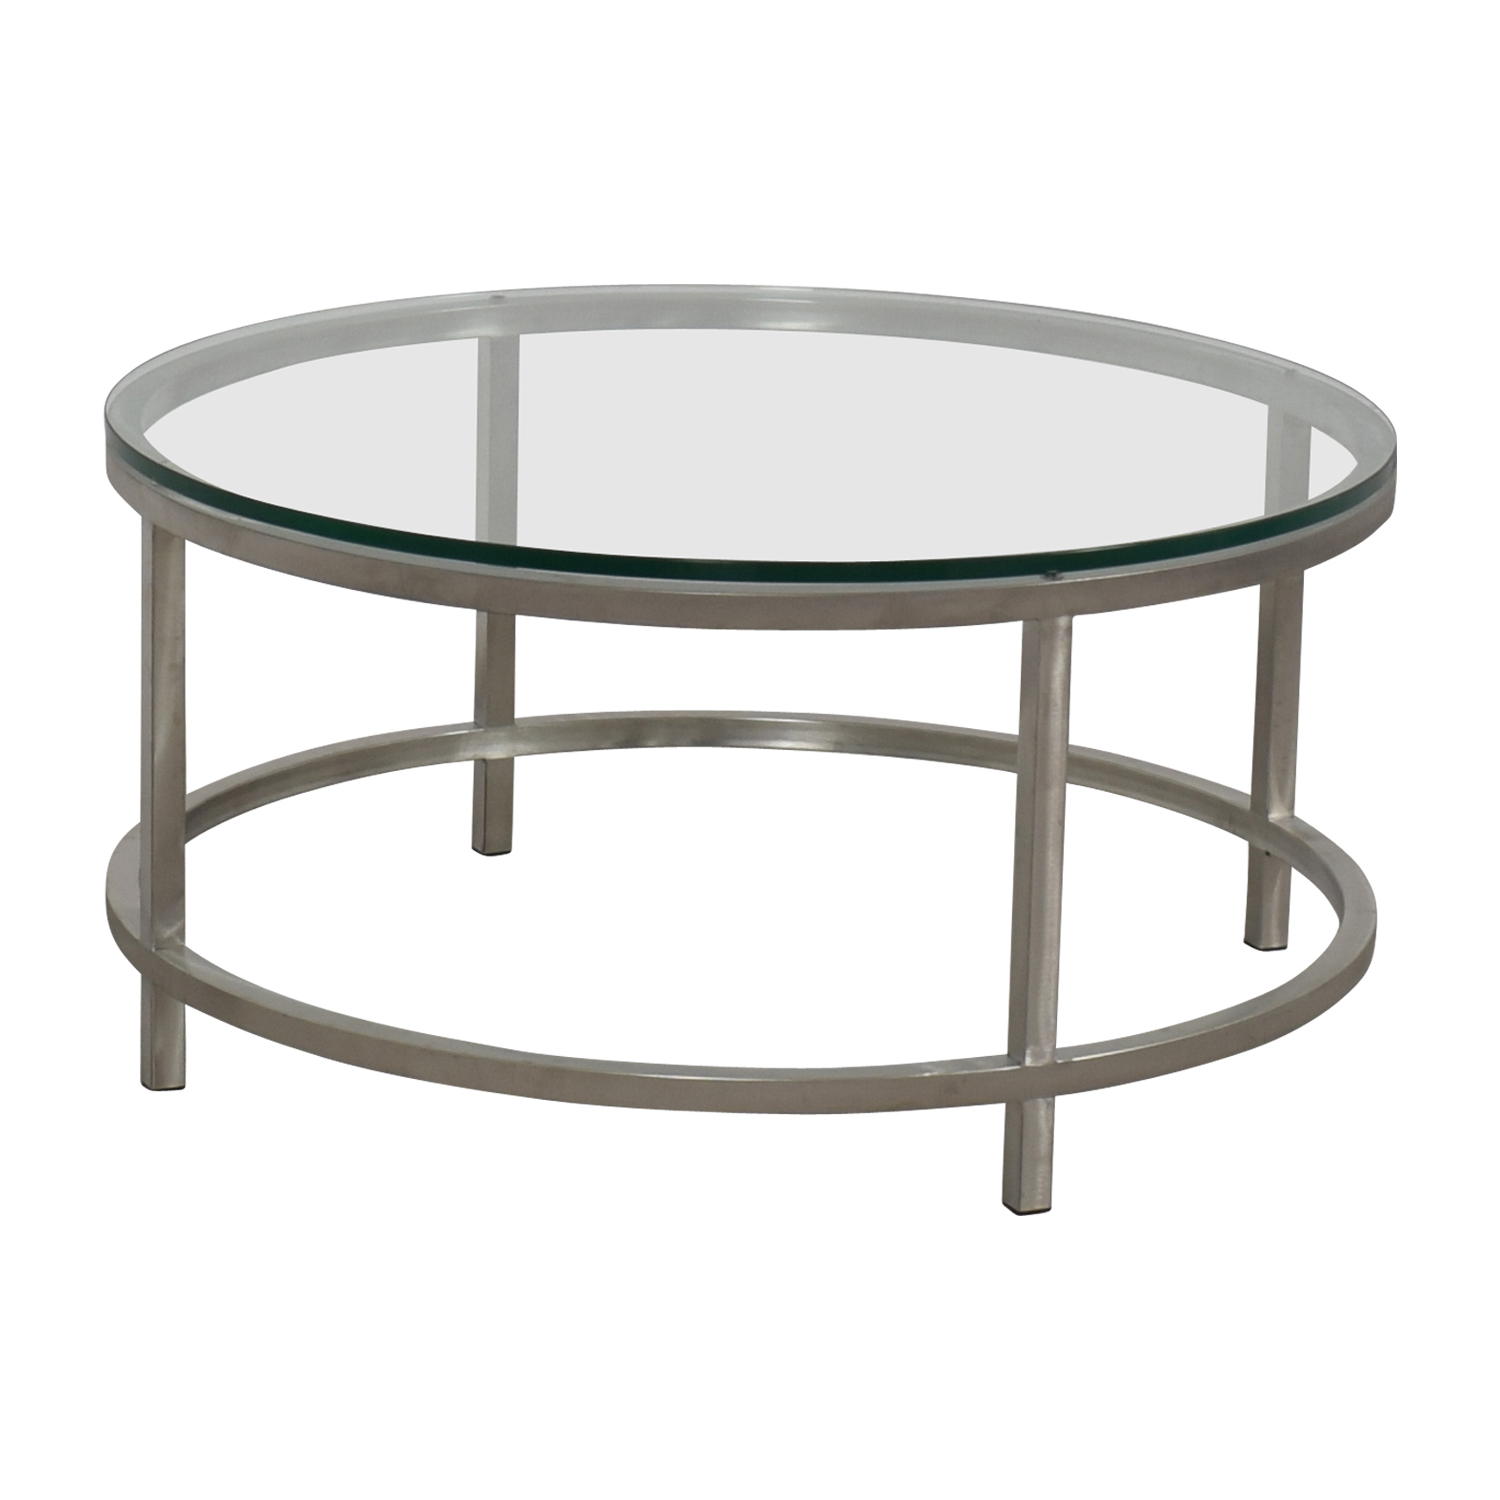 64 off crate barrel crate barrel era round glass and chrome coffee table tables